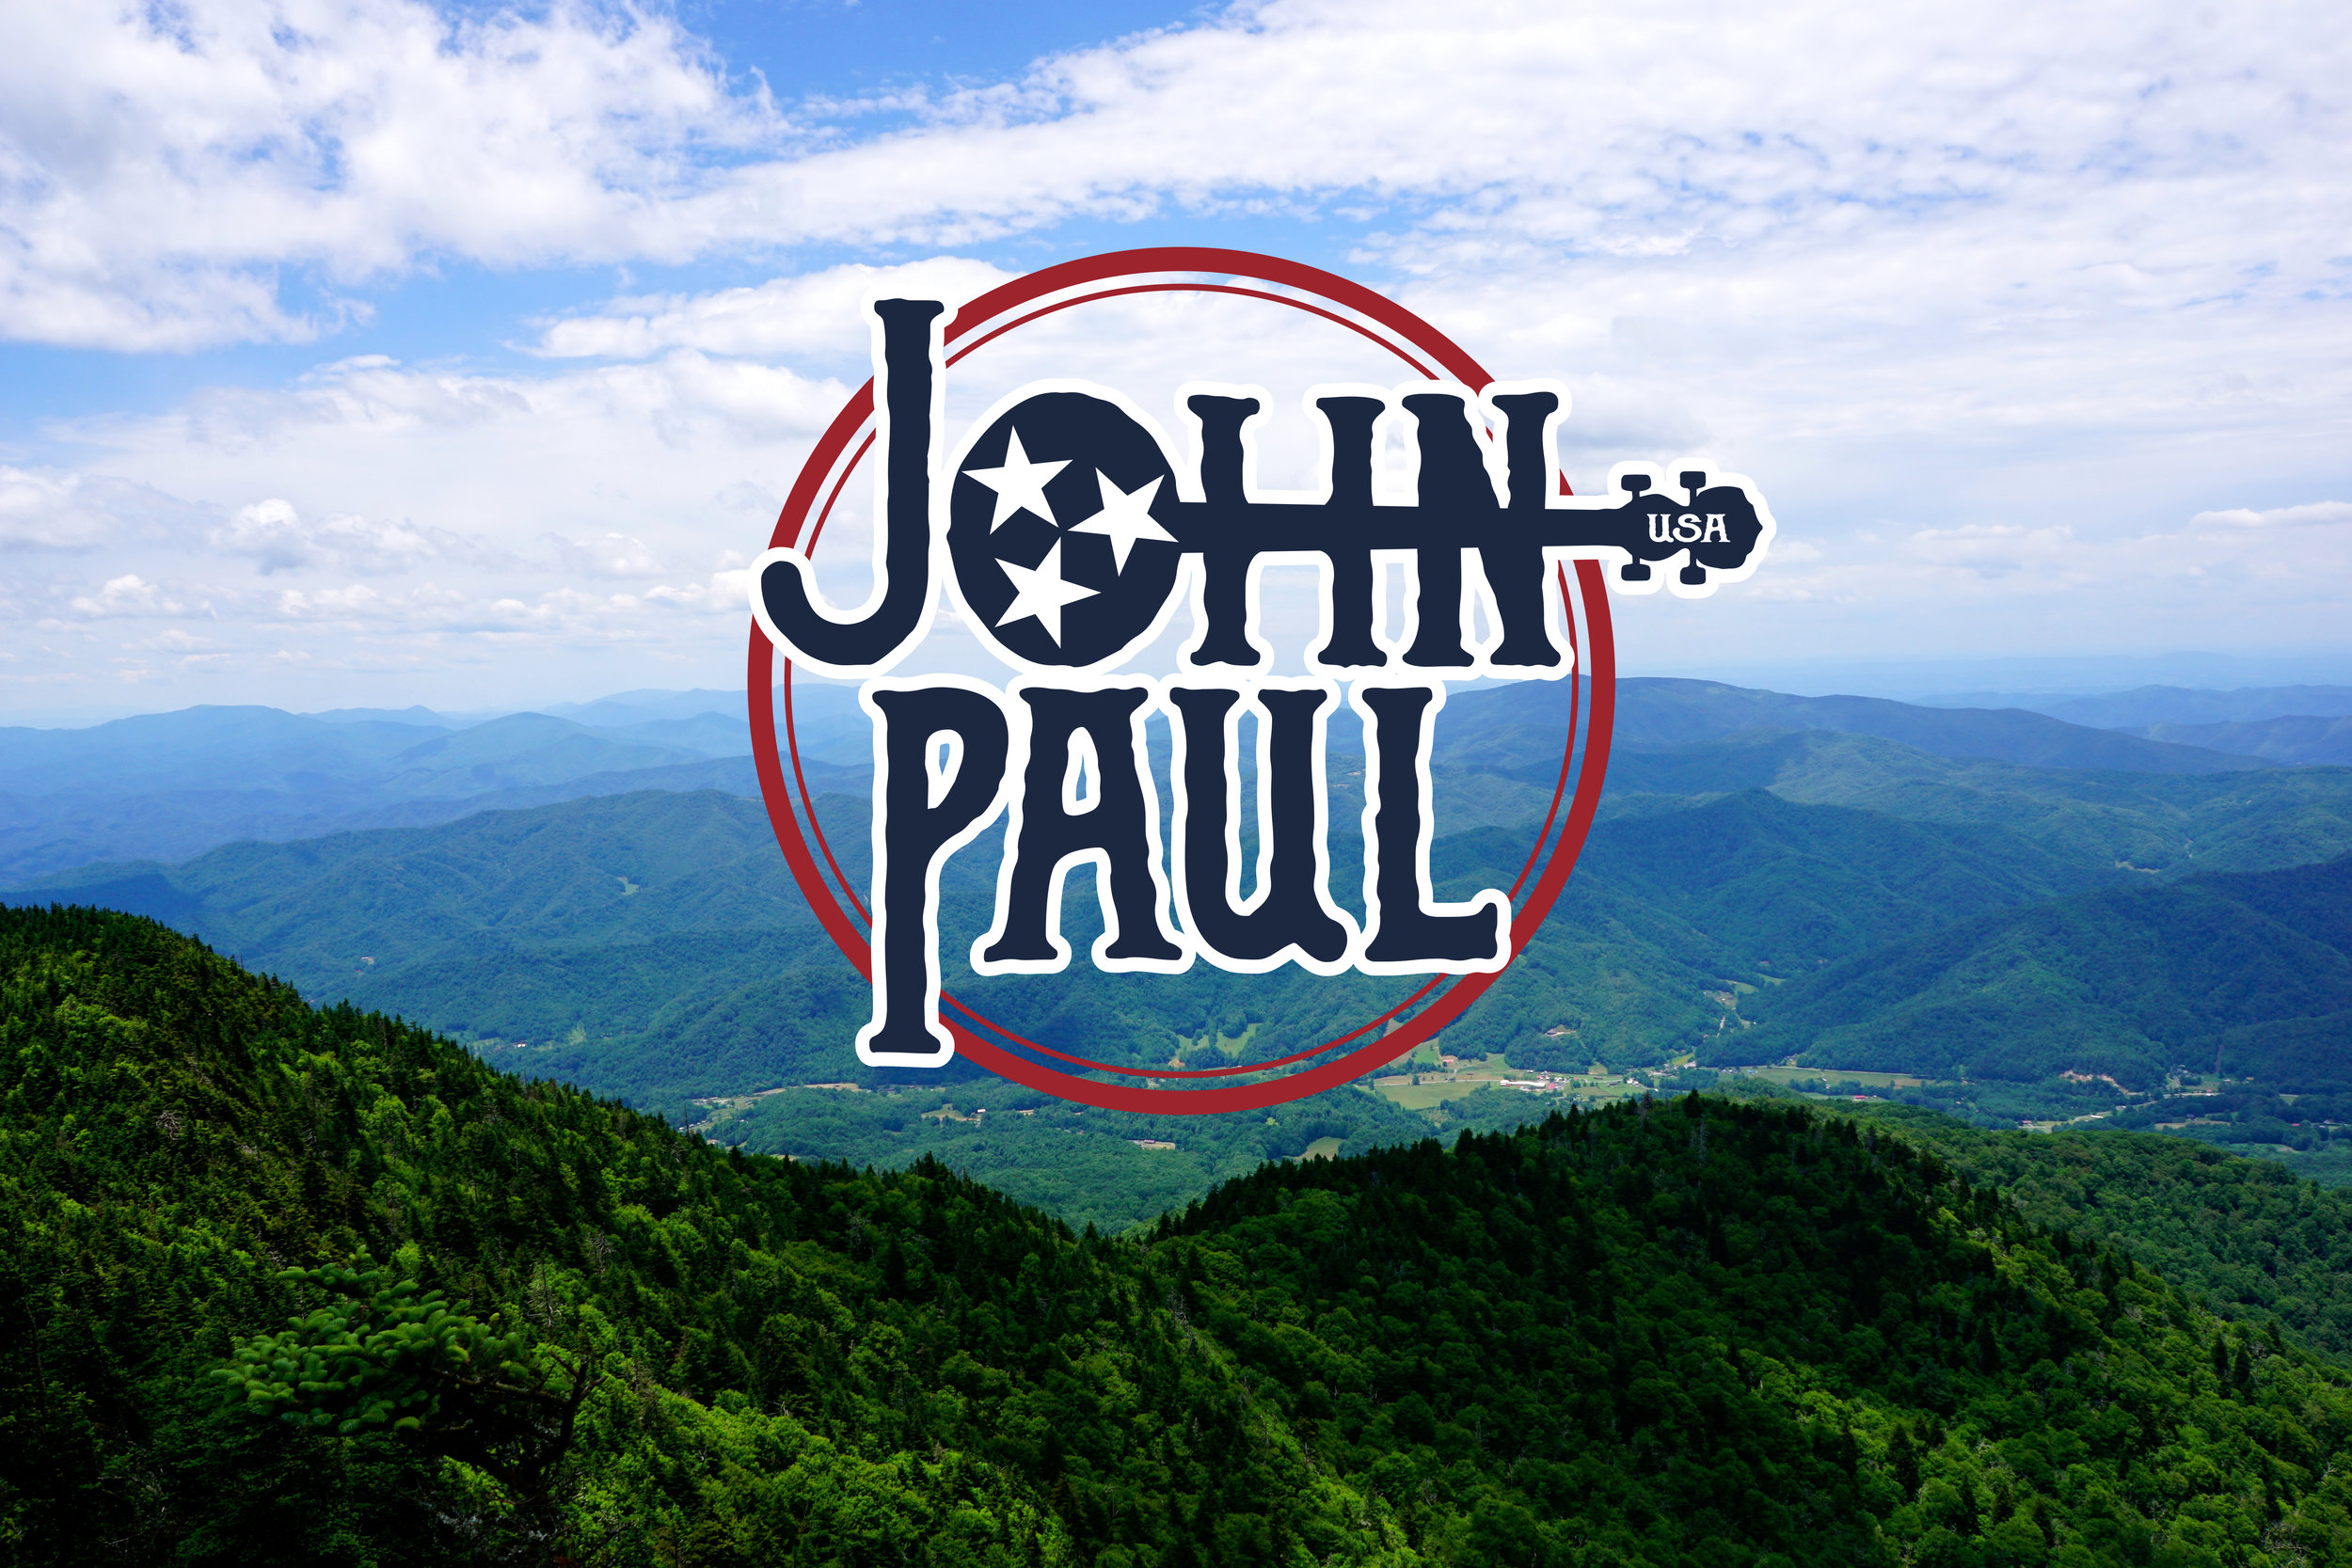 John Paul USA, International